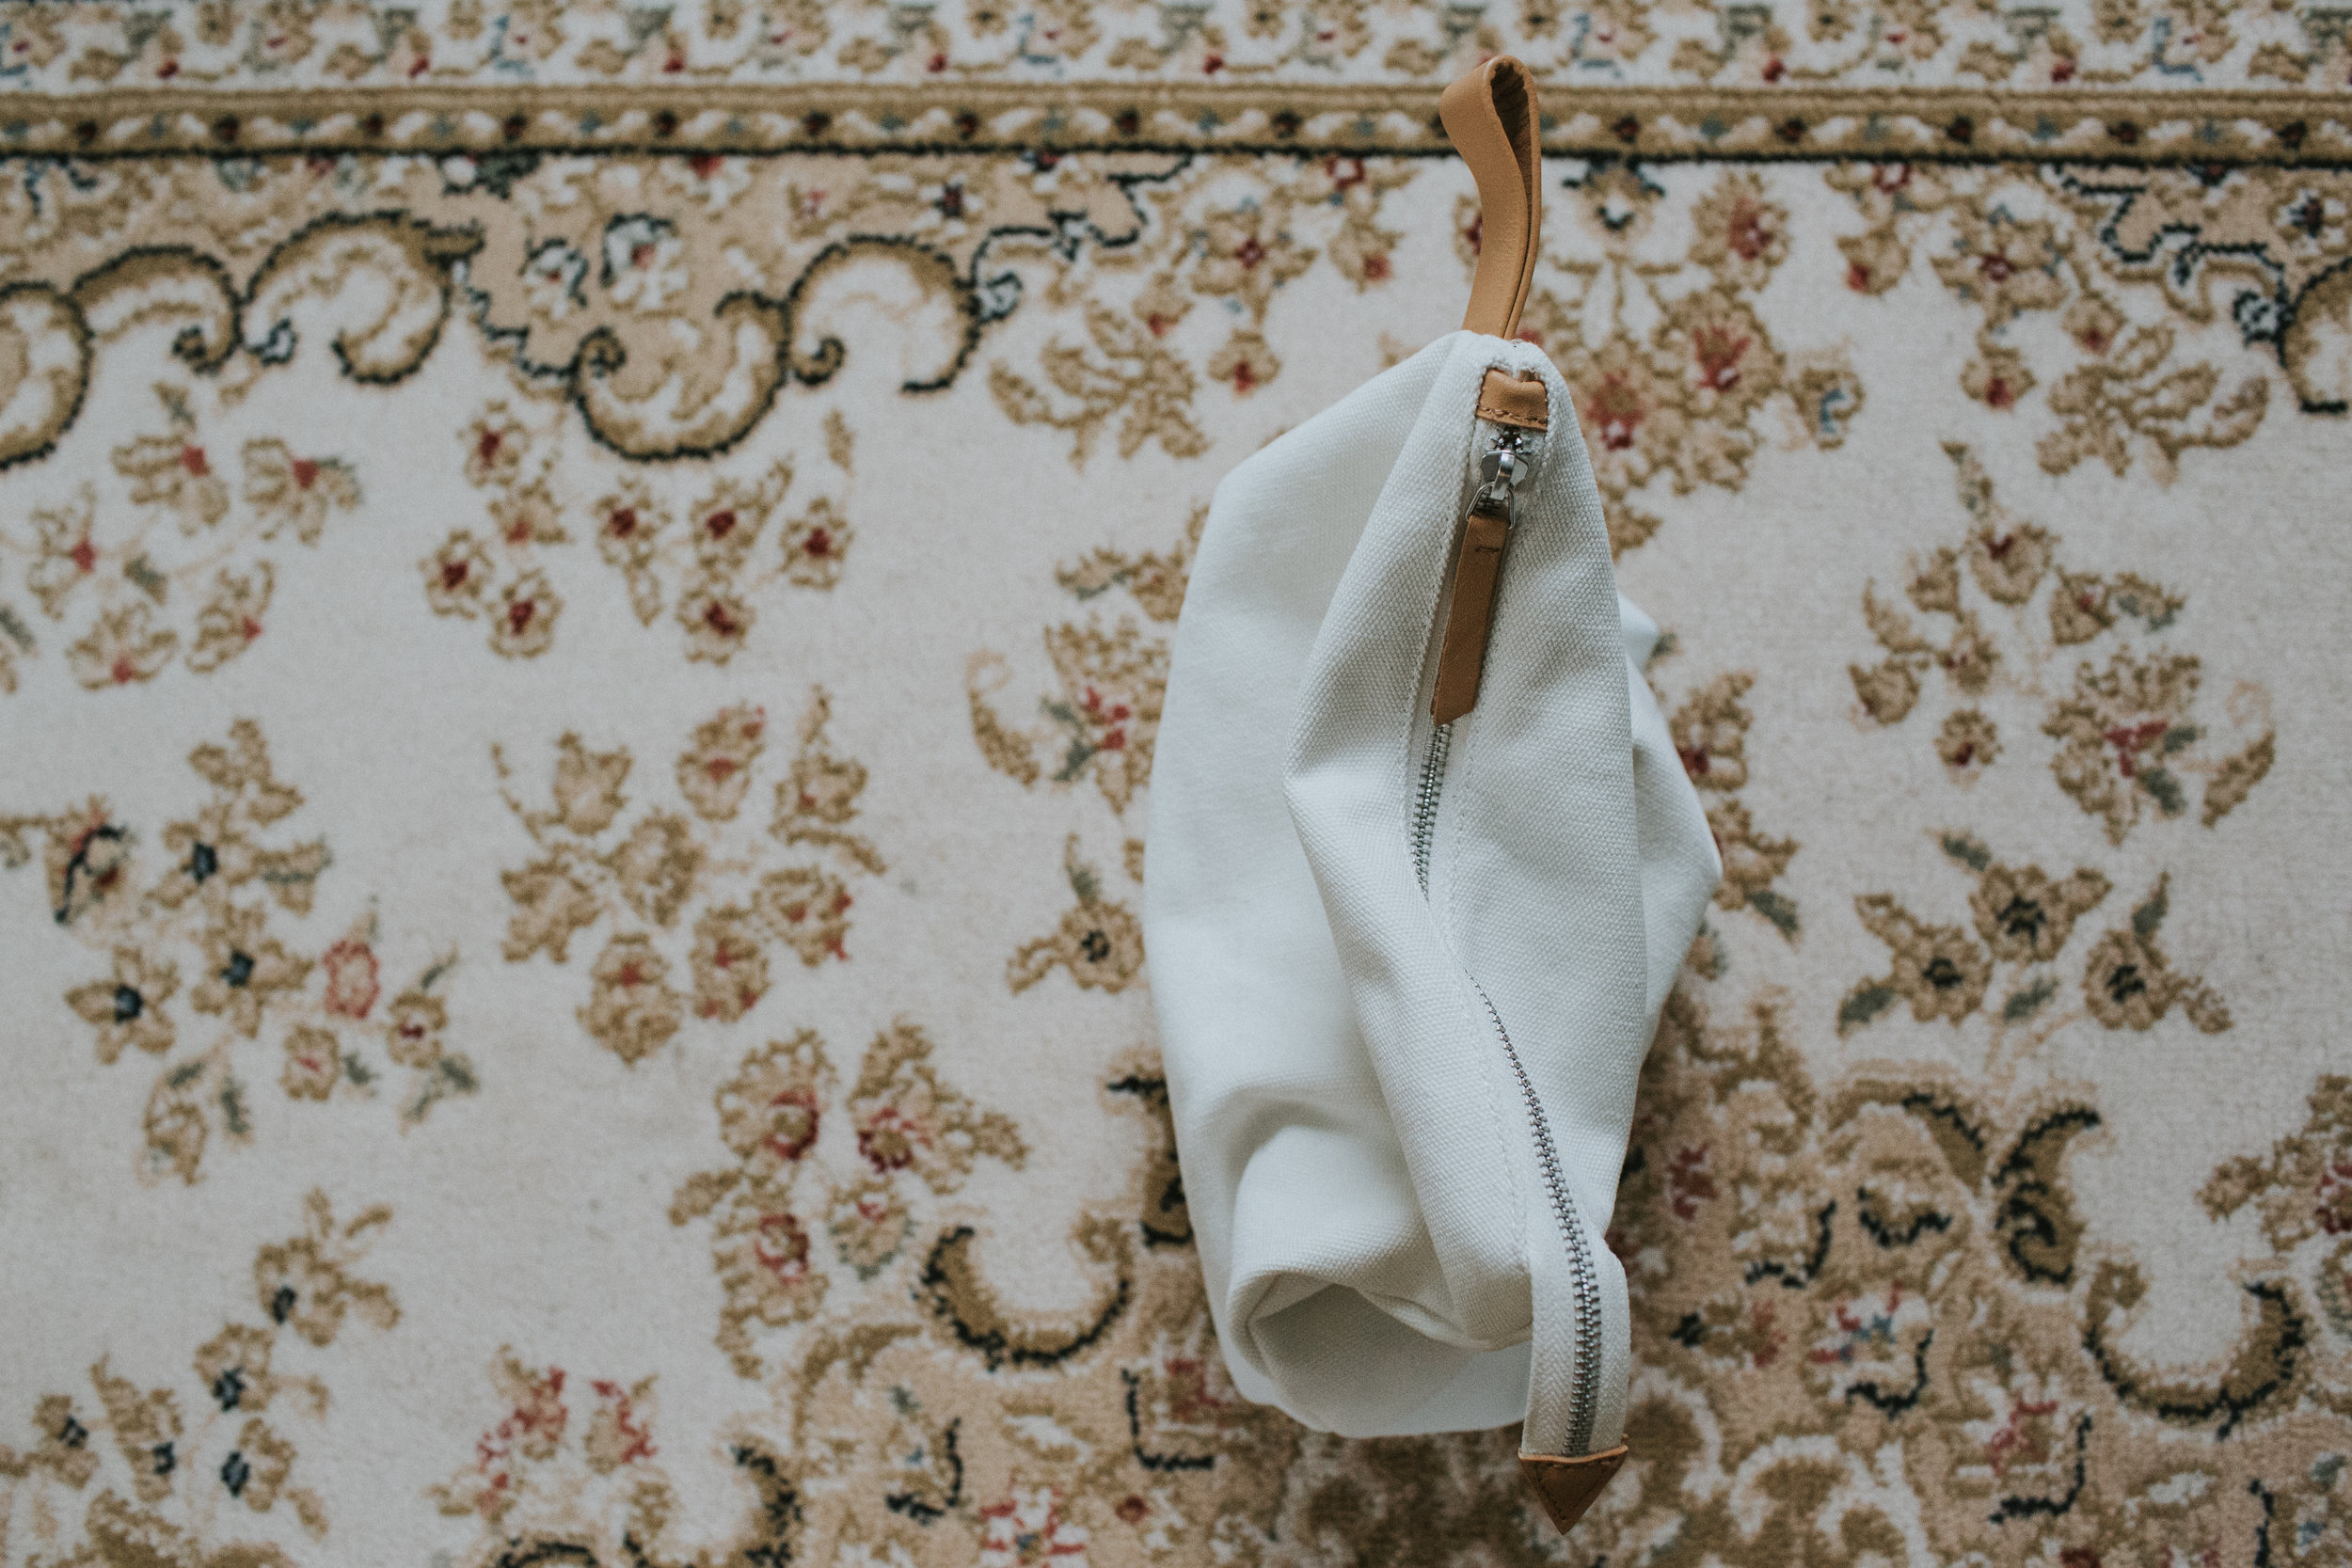 Packing a minimalist hospital bag full of comfort for a gentle birth experience. Eva-Maria Smith writes about motherhood, simplifying and slow-living on www.houseofsmilla.com/blog. Hospital gown / Home birth essentials / Hygge.